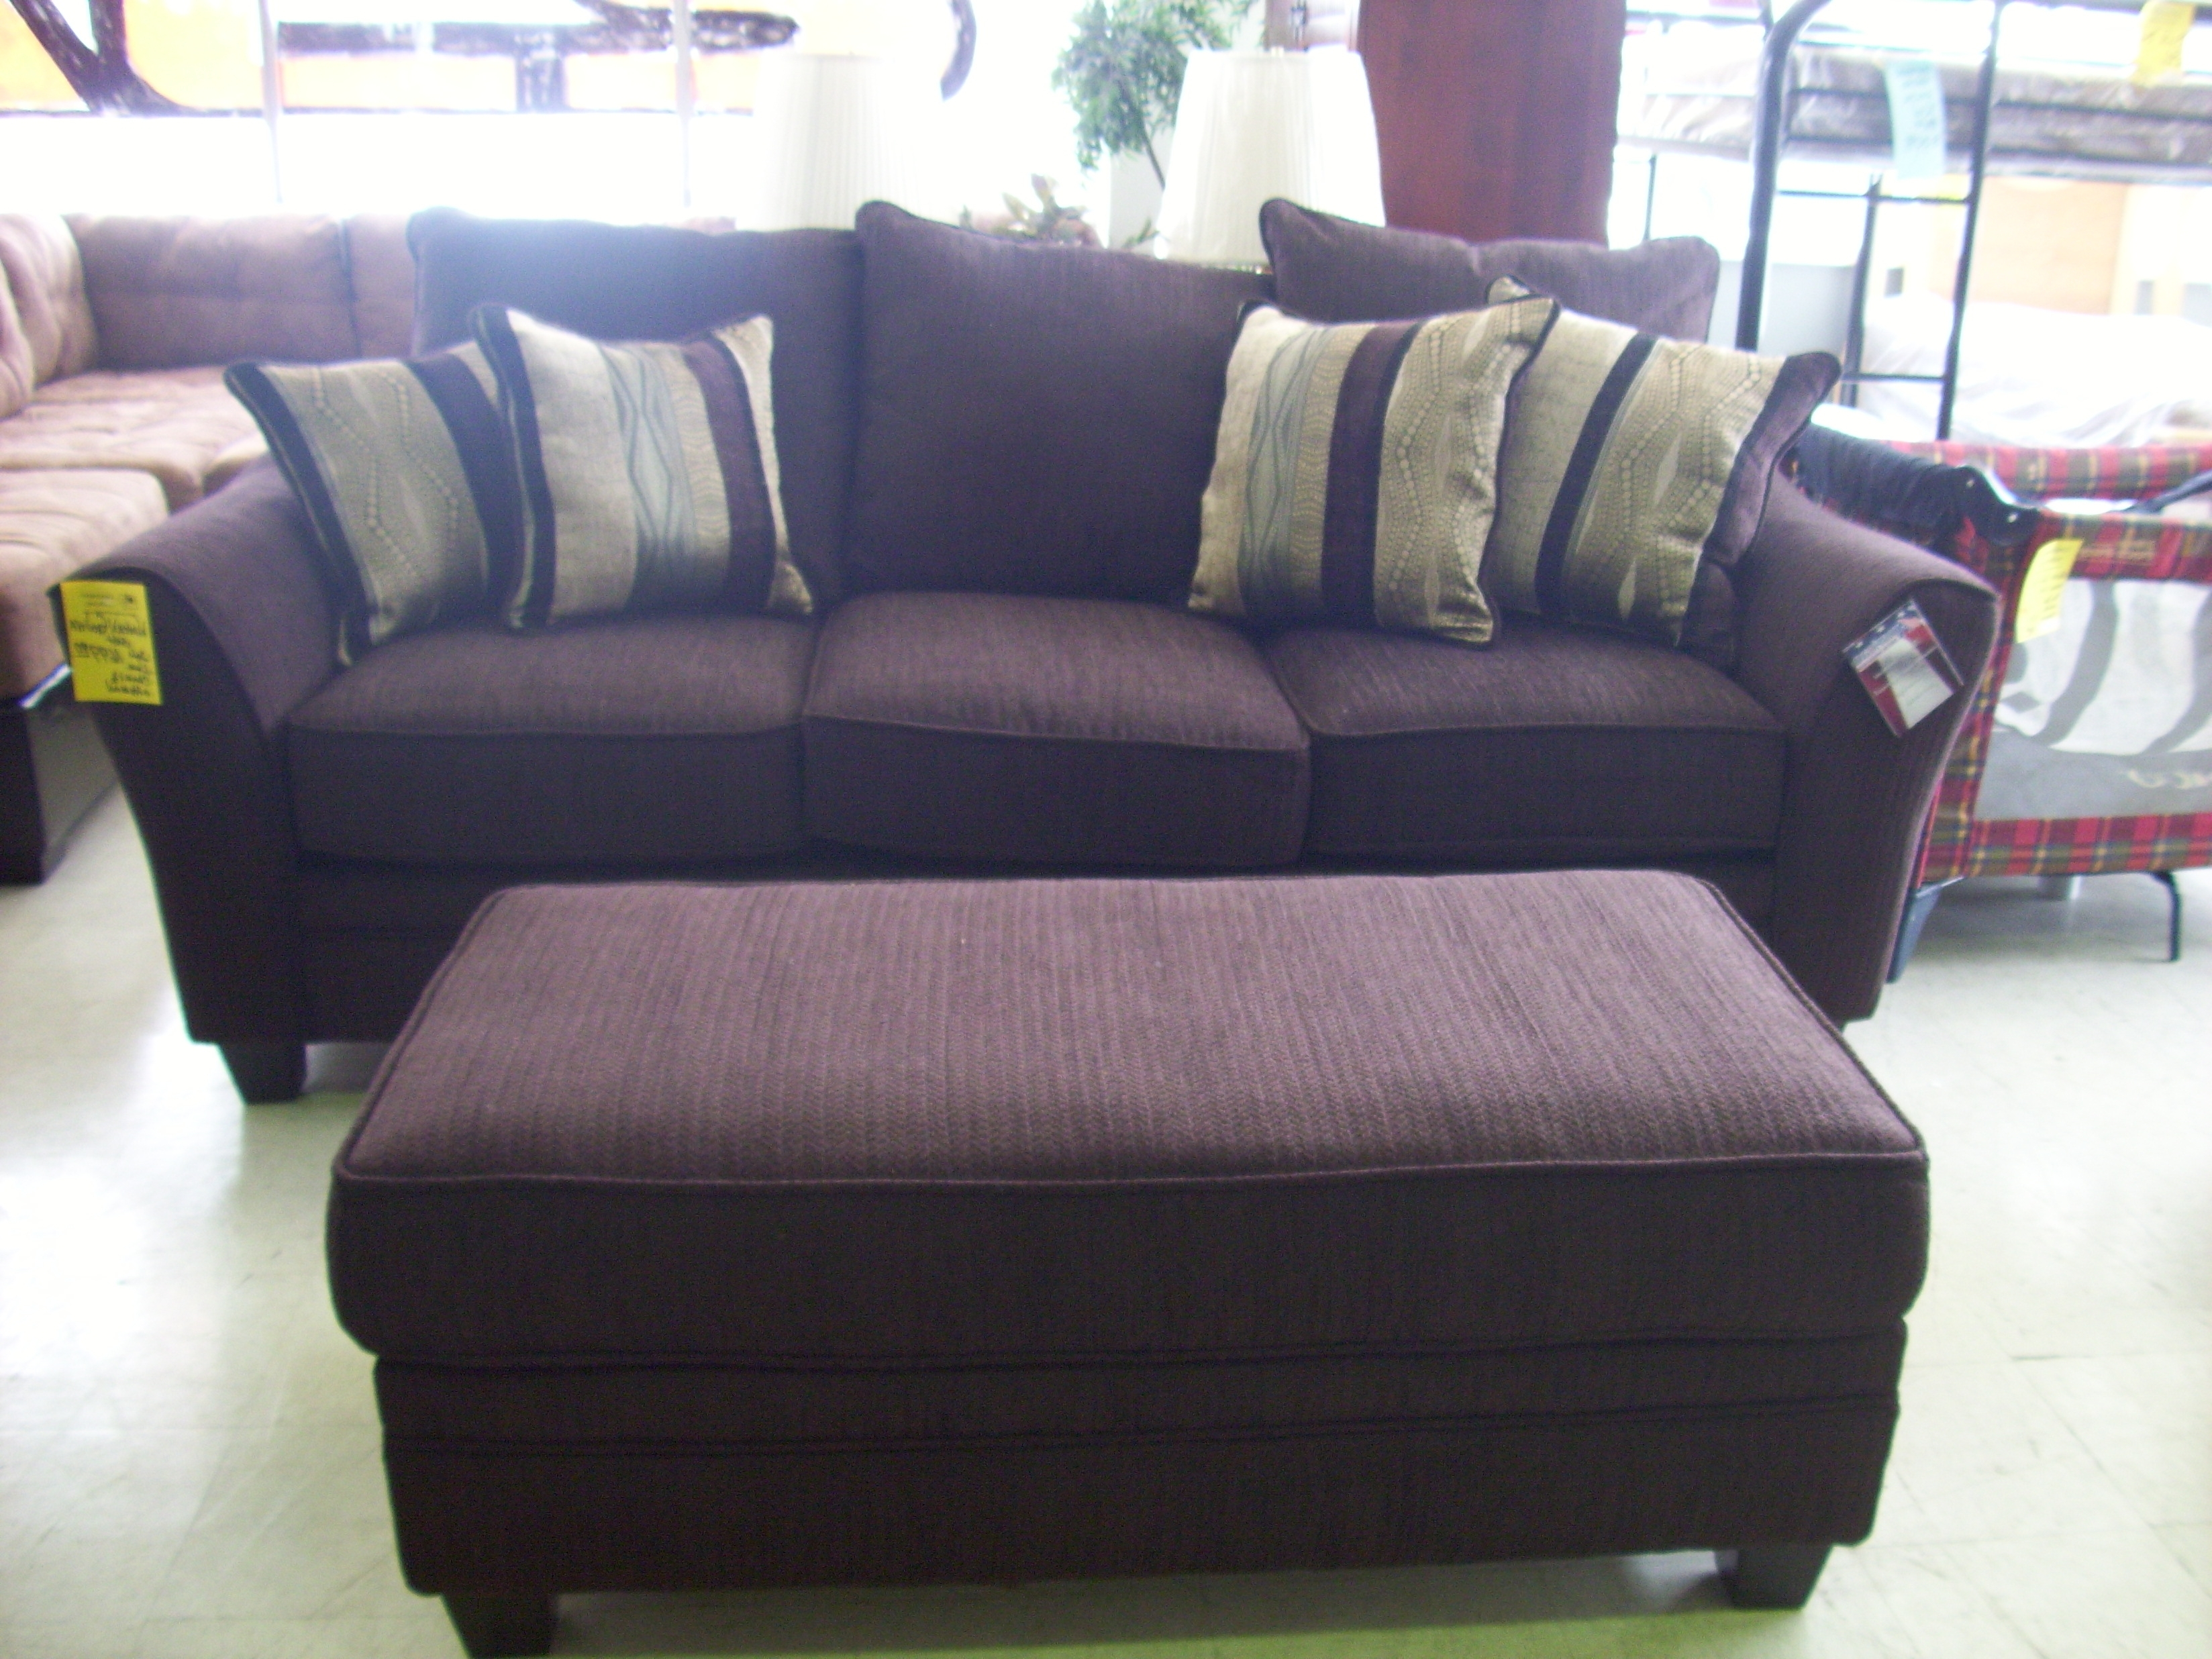 Most Current Oversized Sofa – Helpformycredit Pertaining To Oversized Sofa Chairs (View 11 of 20)